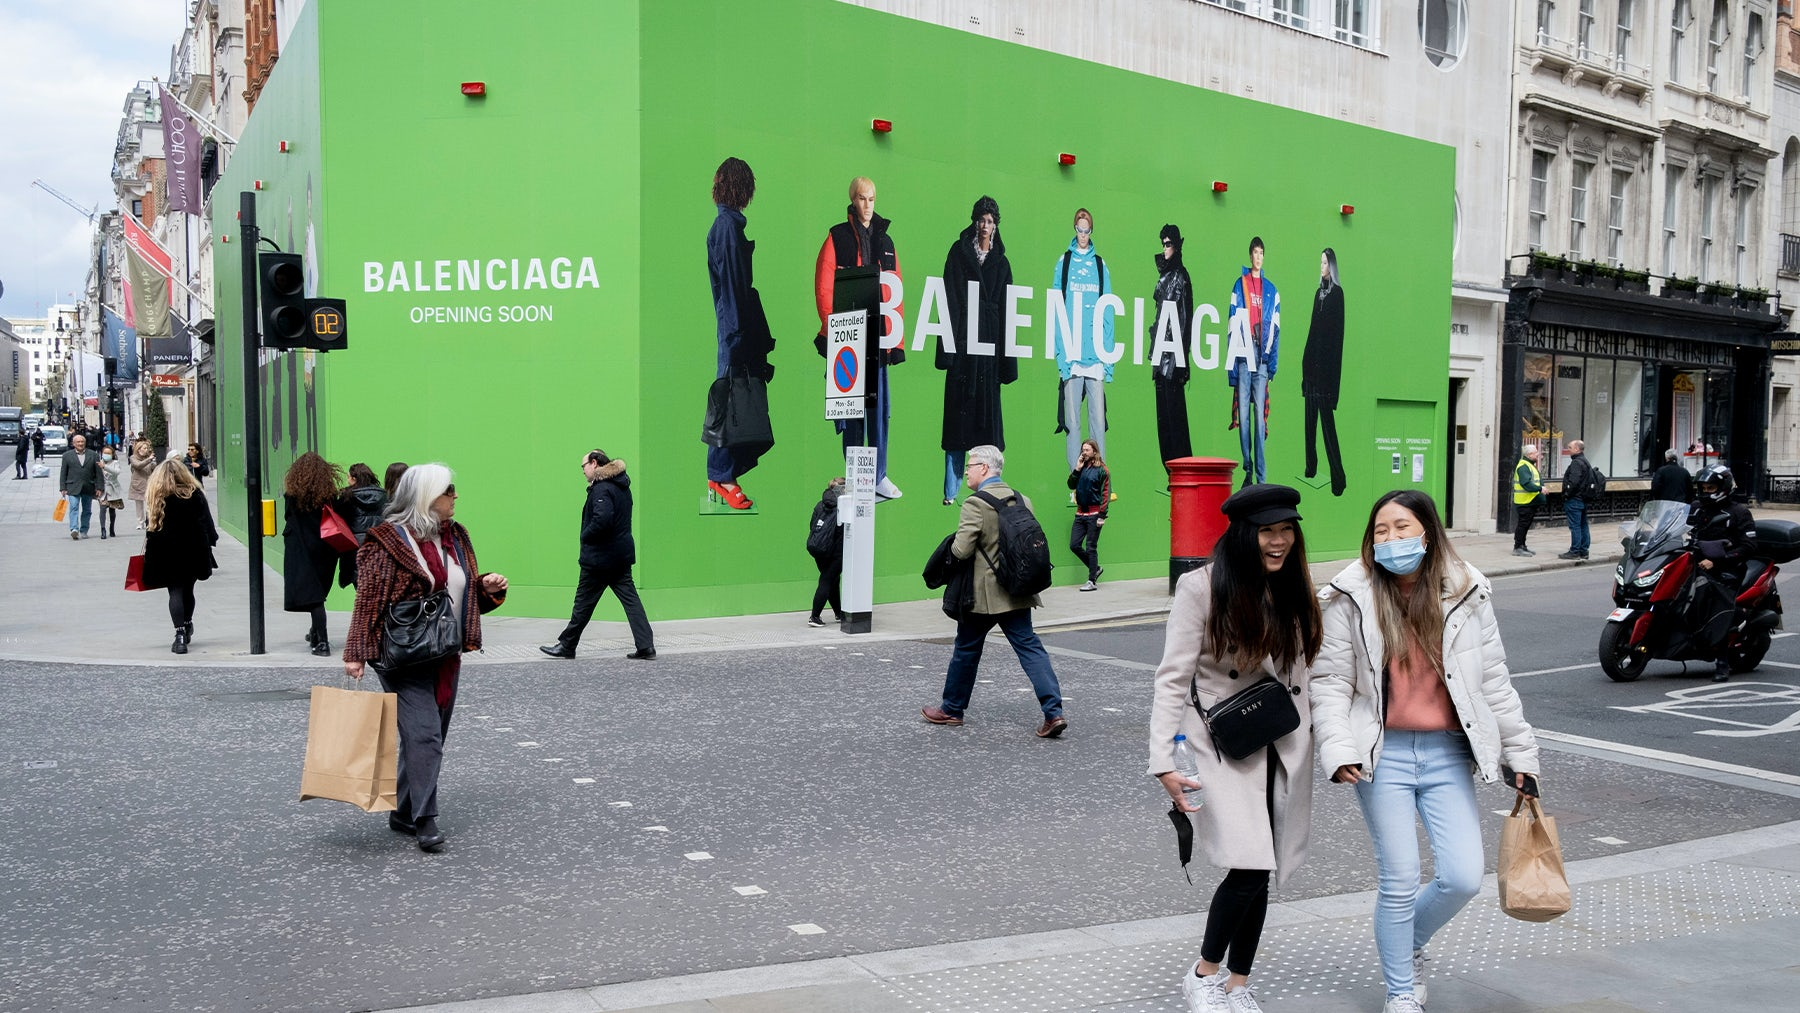 Balenciaga\'s new store location on Bond Street in London. Getty Images.